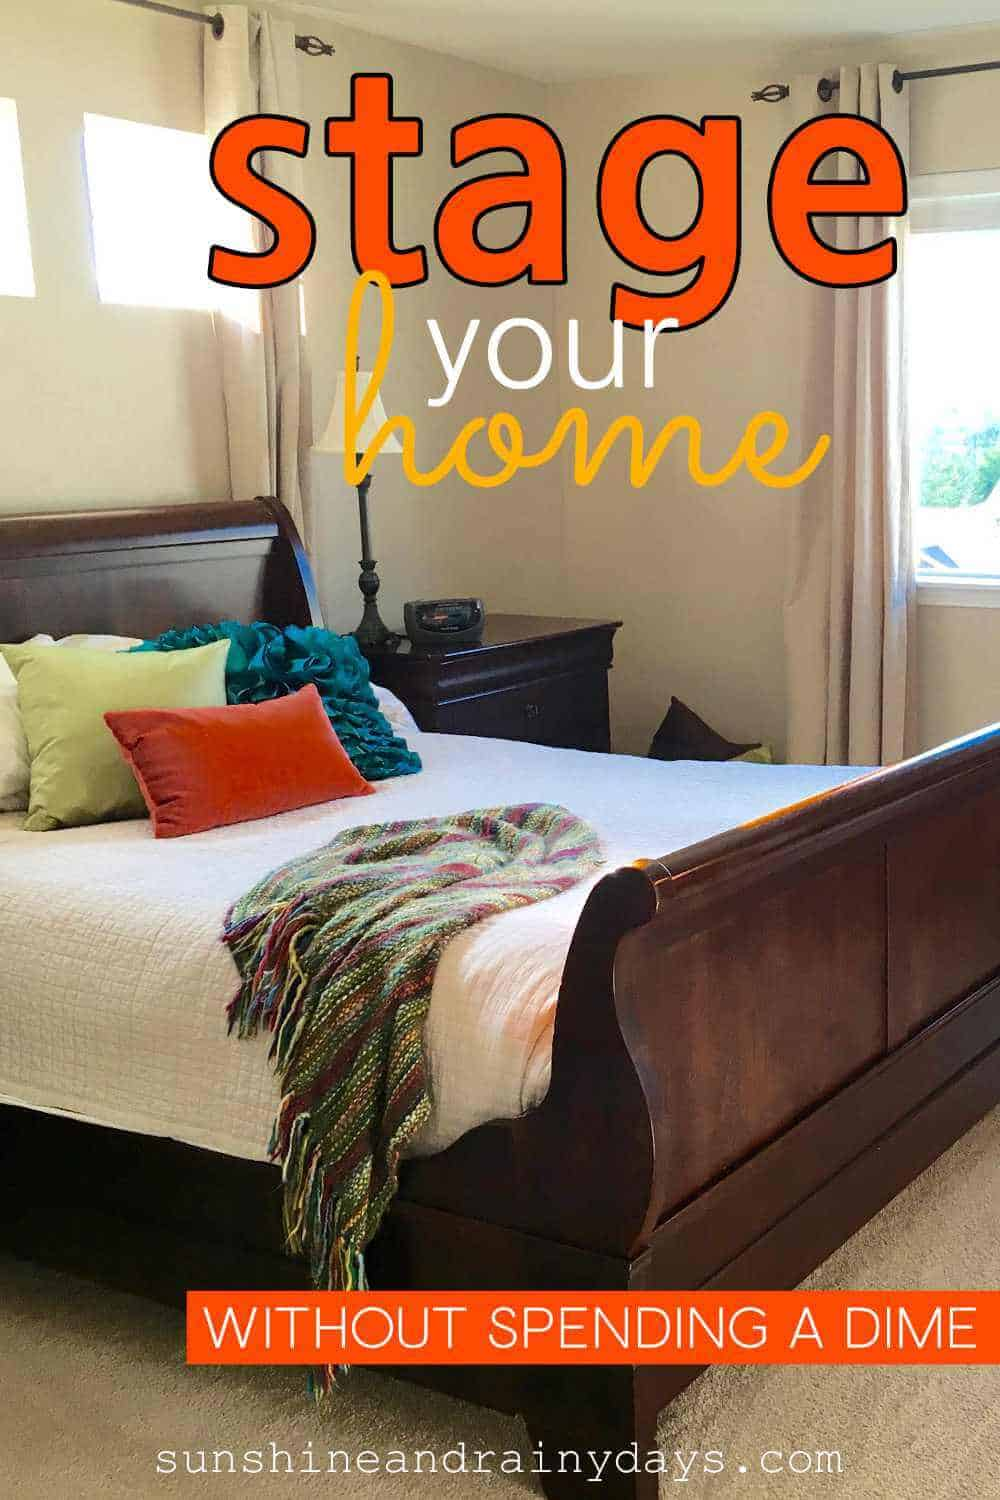 Bedroom with the words: Stage Your Home Without Spending A Dime